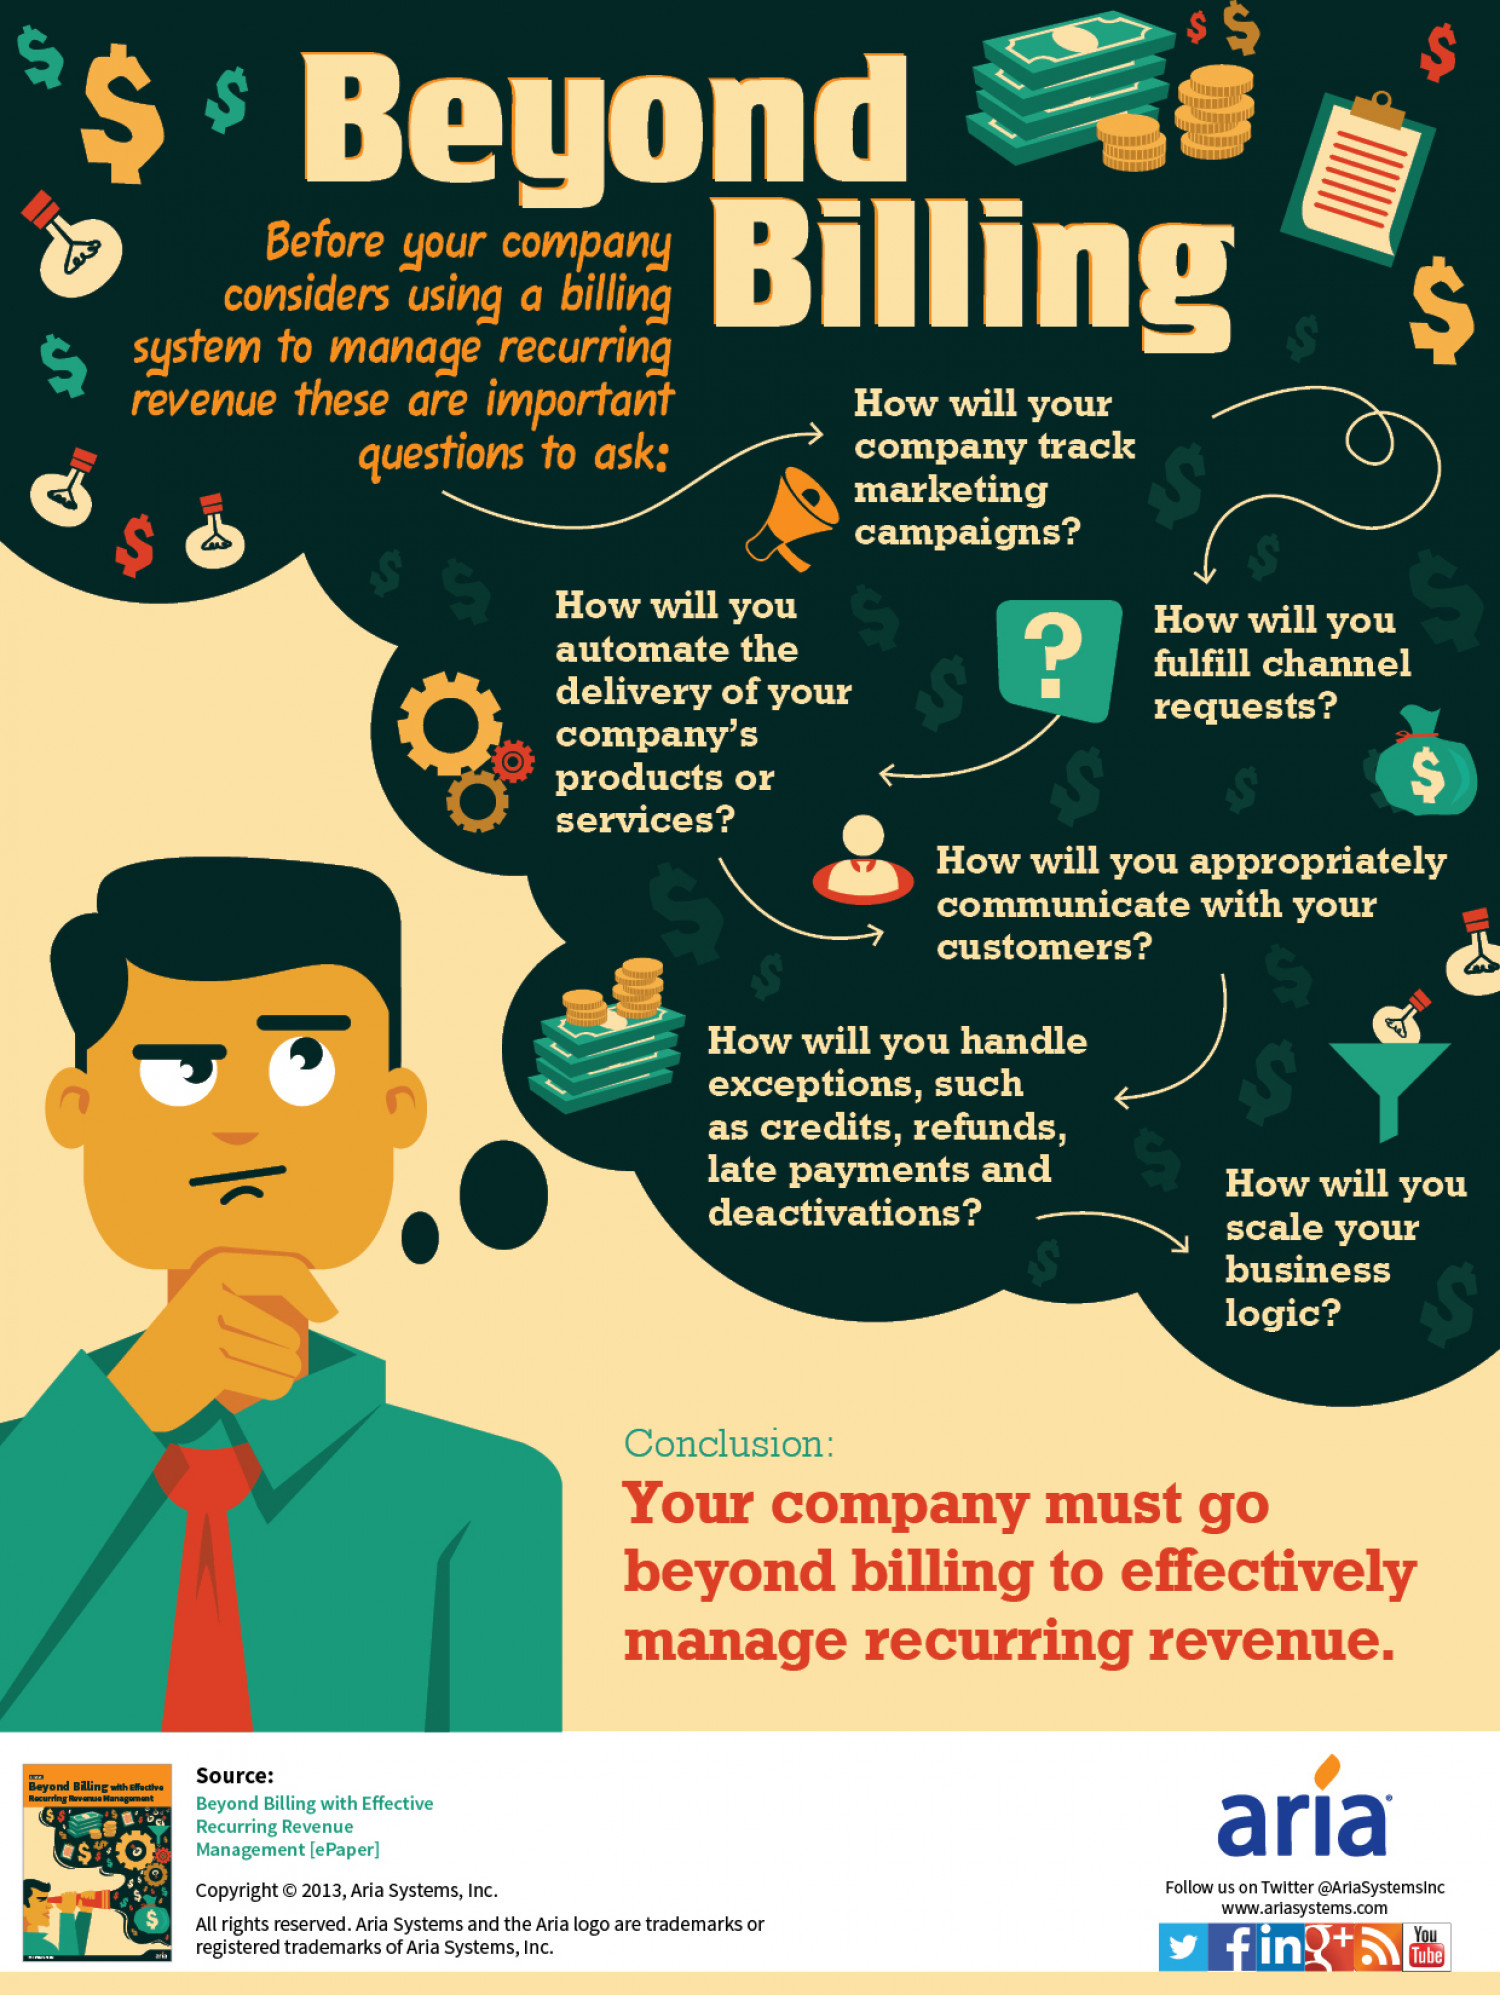 Beyond Billing - 6 Questions to Ask Infographic